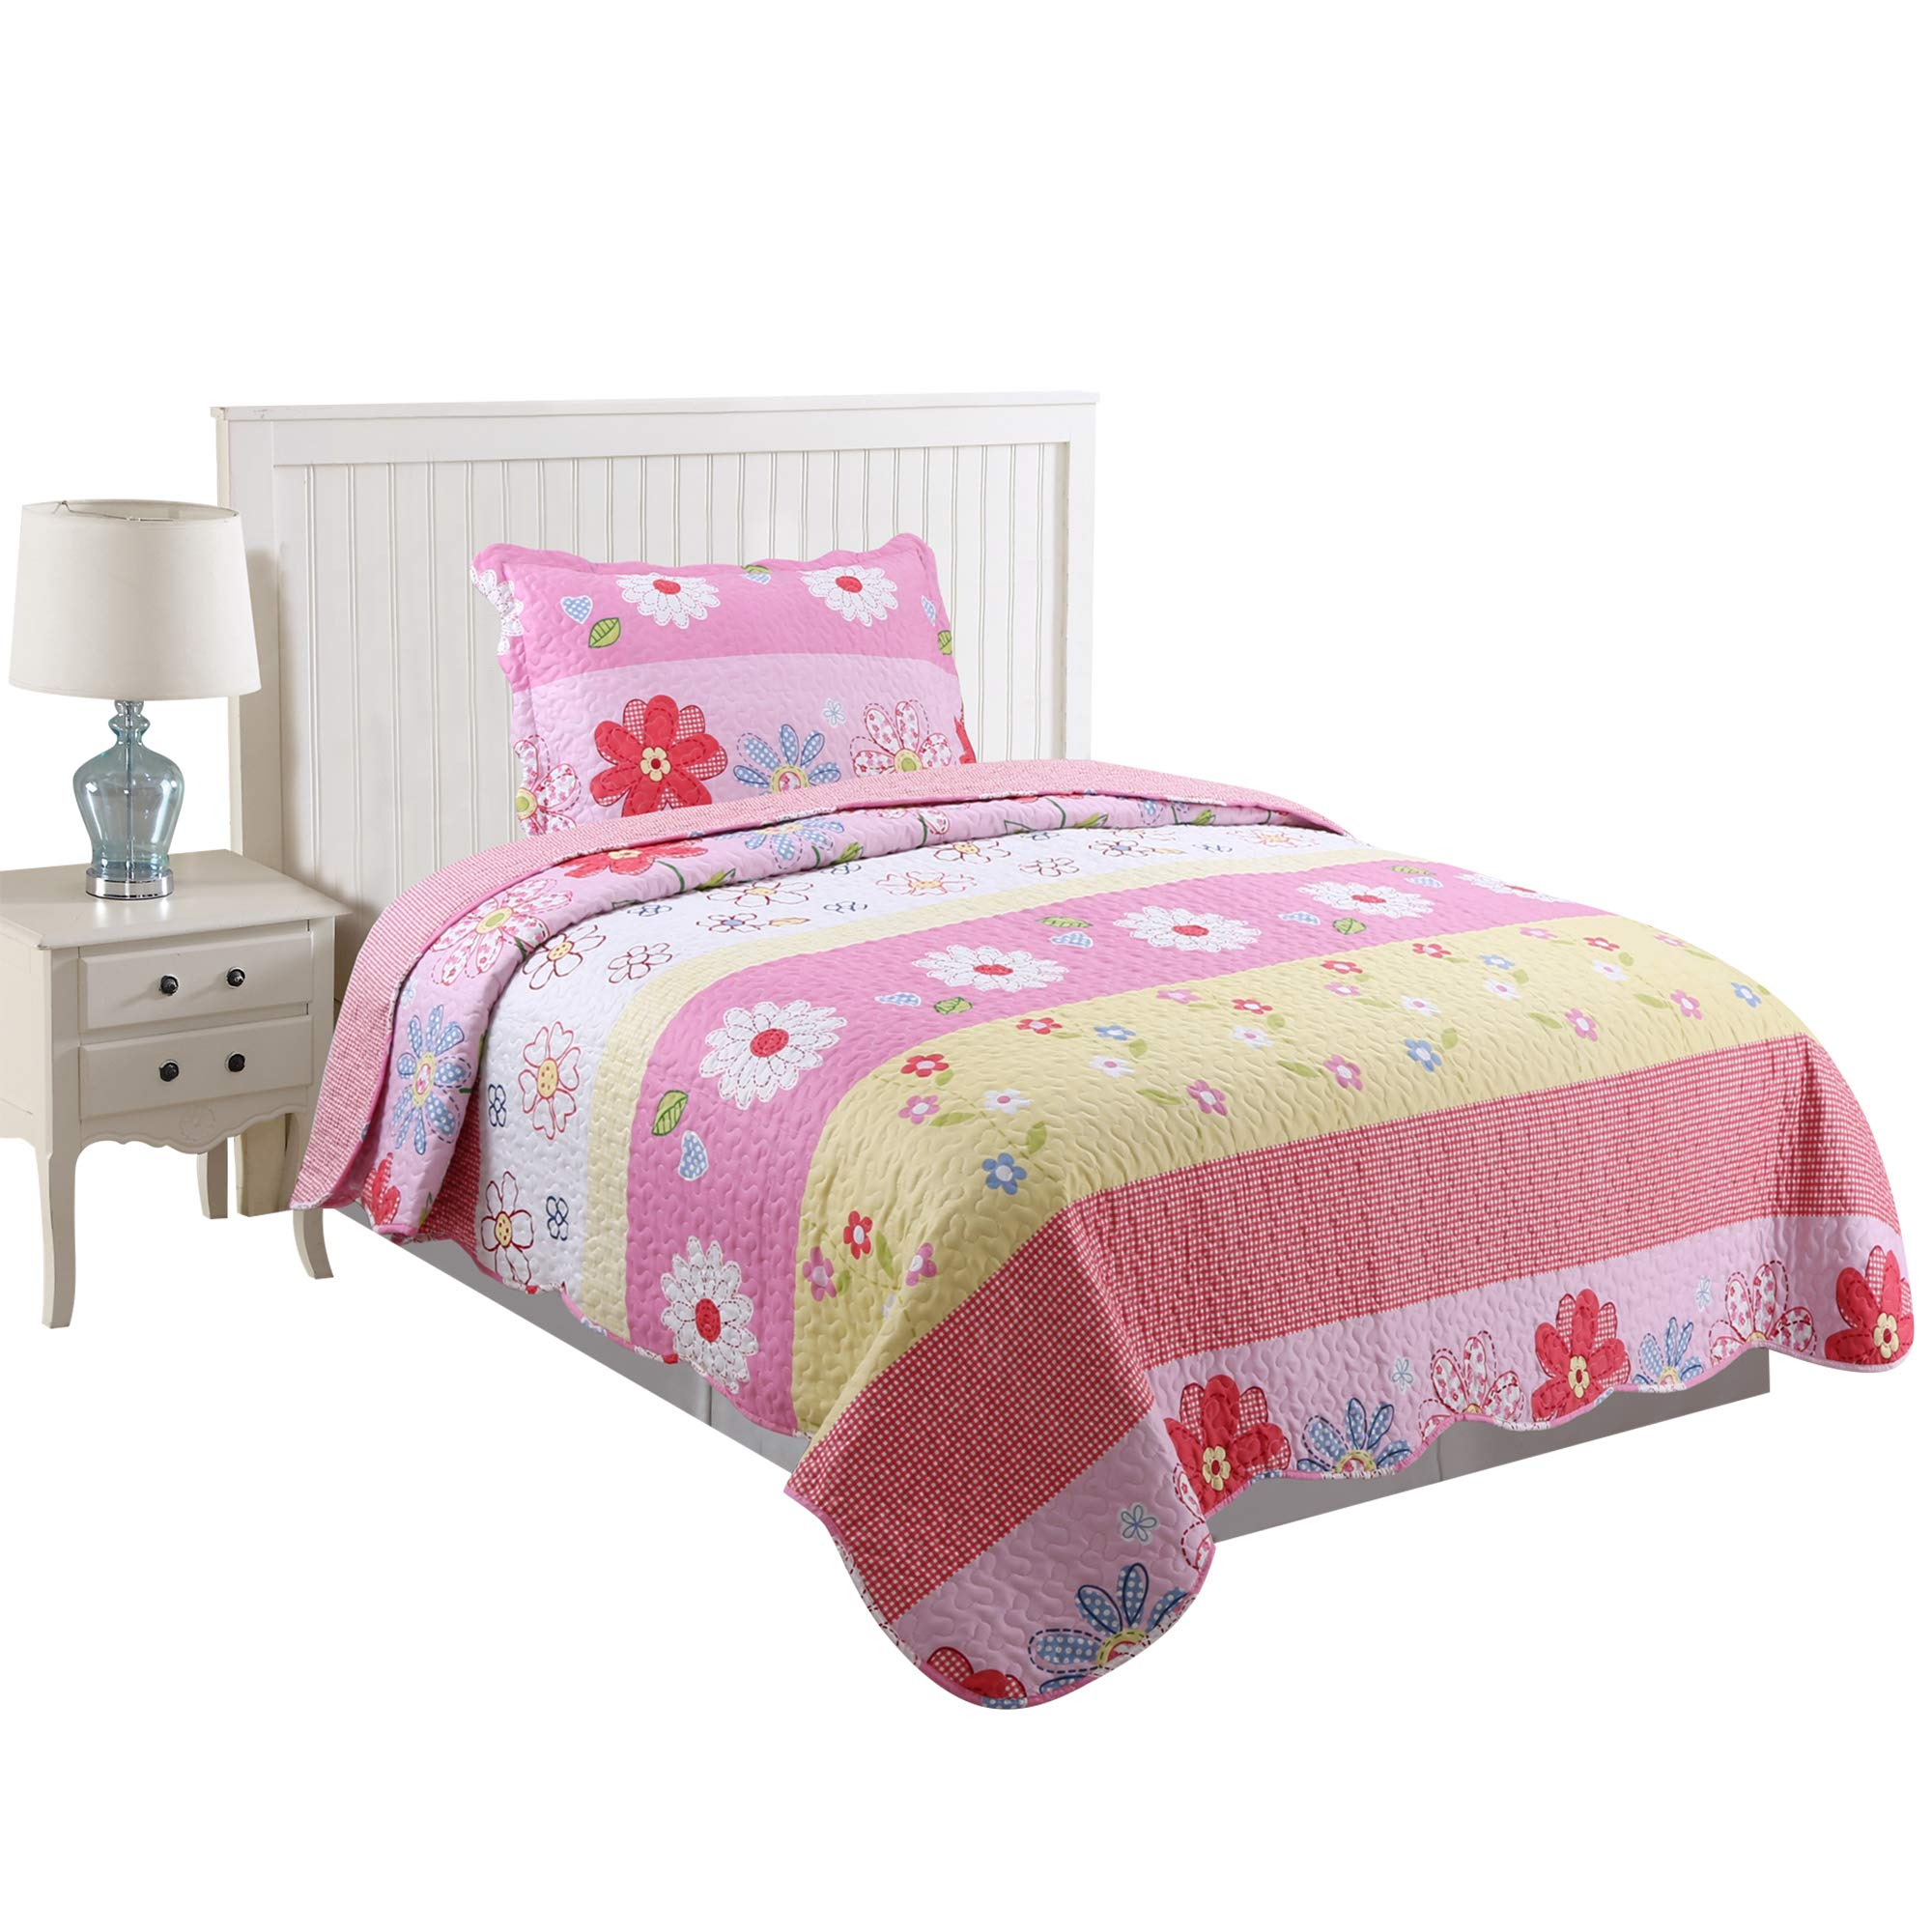 MarCielo 2 Piece Kids Bedspread Quilts Set Throw Blanket for Teens Girls Bed Printed Bedding Coverlet, Twin Size Pink Floral (Twin)